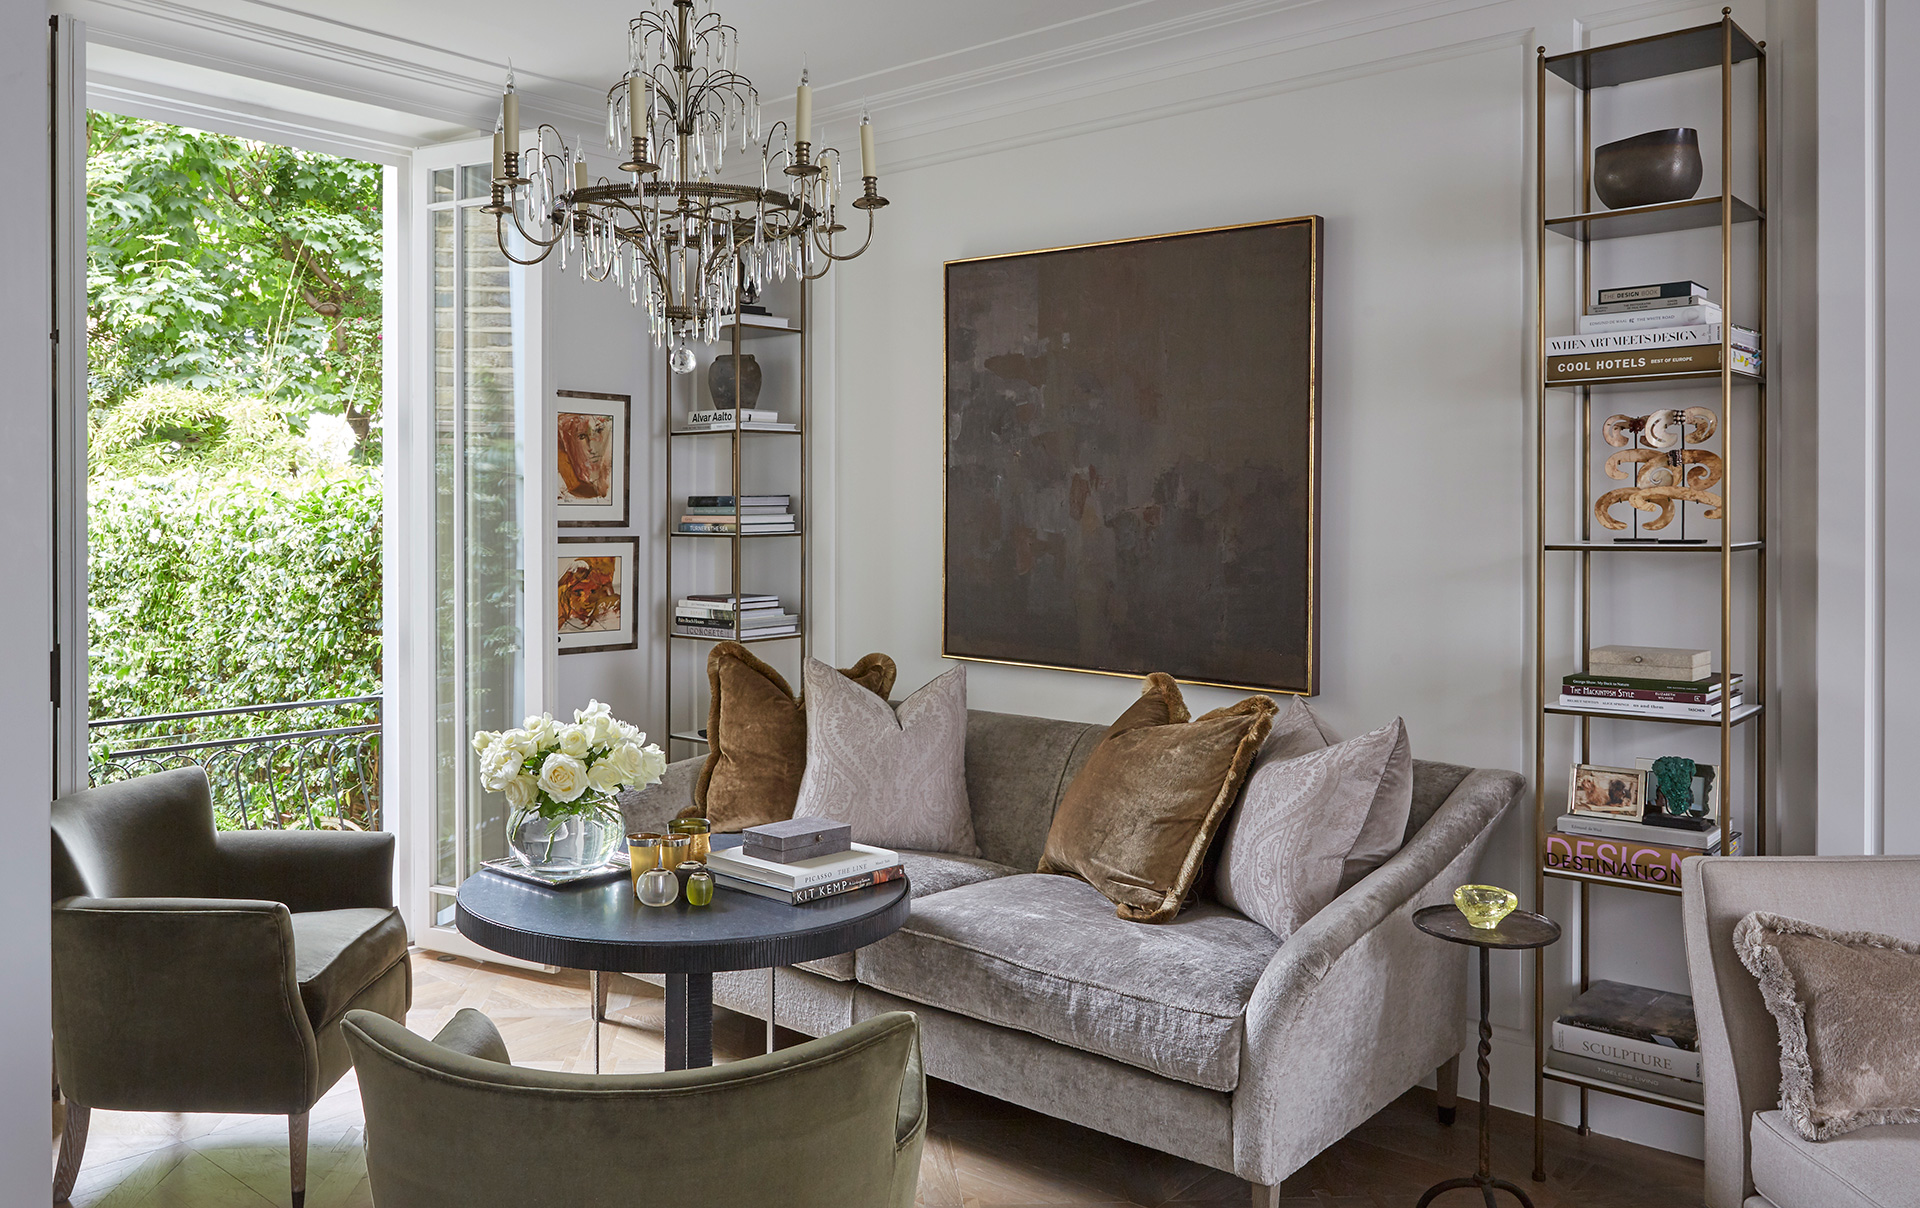 As elegant as the spaces look, comfort has played a lovely role in the coming together of them| Louise Bradley| London| STIR